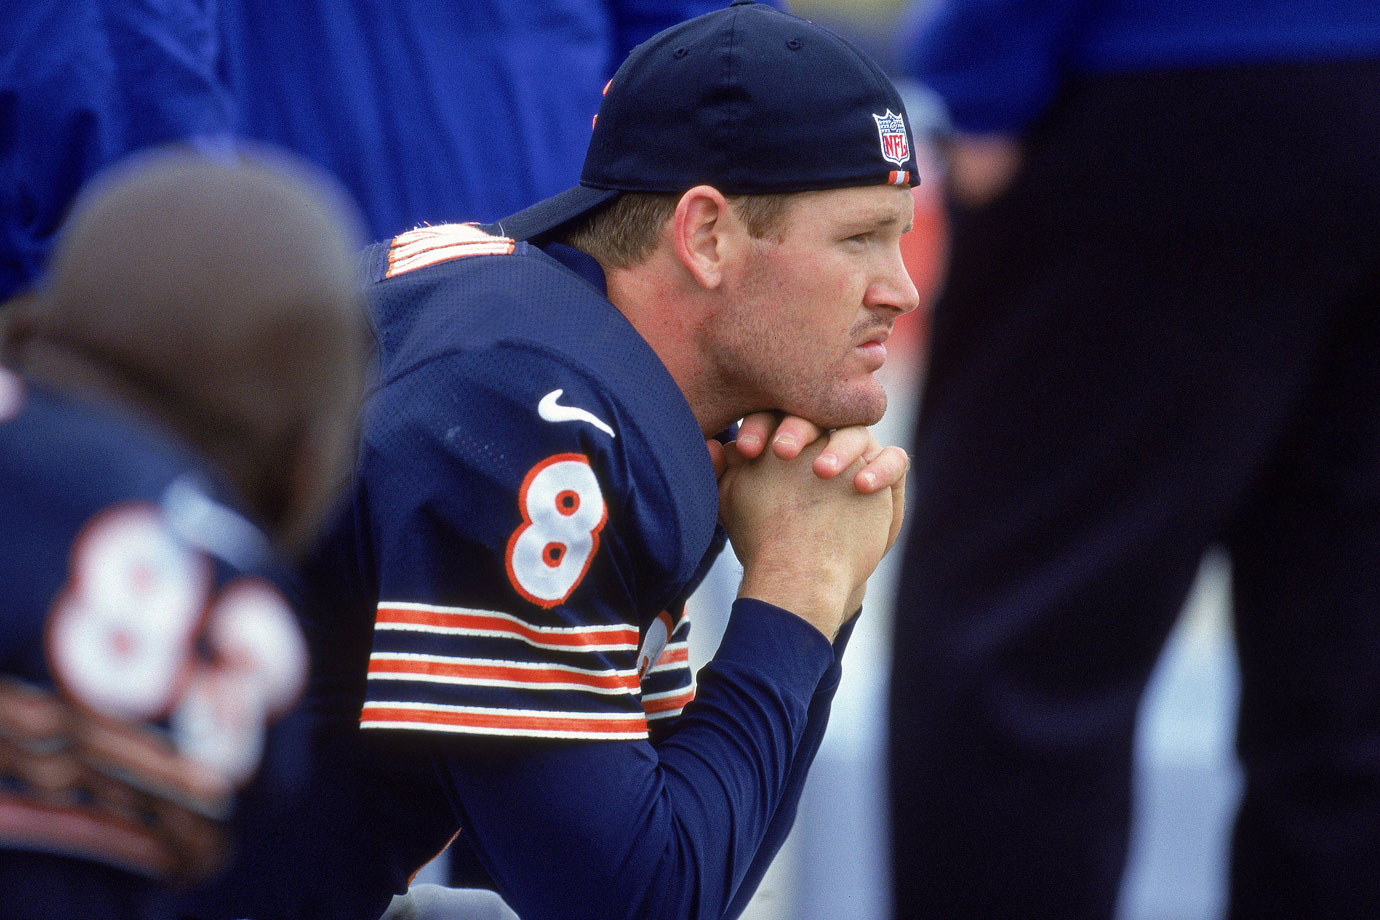 The decision to take McNown with the No. 12 pick in the 1999 draft is one of the worst of their epically bad quarterback personnel decisions. McNown was a holdout through most of his rookie preseason, but eventually signed a seven-year, $15 million deal with a $6 million signing bonus. There were incentives in that deal worth another $7 million—safe to say McNown at least saved the Bears money there. McNown played sparingly in his first five games, throwing his first touchdown pass (and his first two picks) against the Eagles in Week 6. Eventually, ineffectiveness and injuries forced the Bears to go in a different direction at the quarterback position. By the time he was traded to the Dolphins in 2001, McNown was reduced to fighting for Chicago's third-string job with Danny Wuerffel.